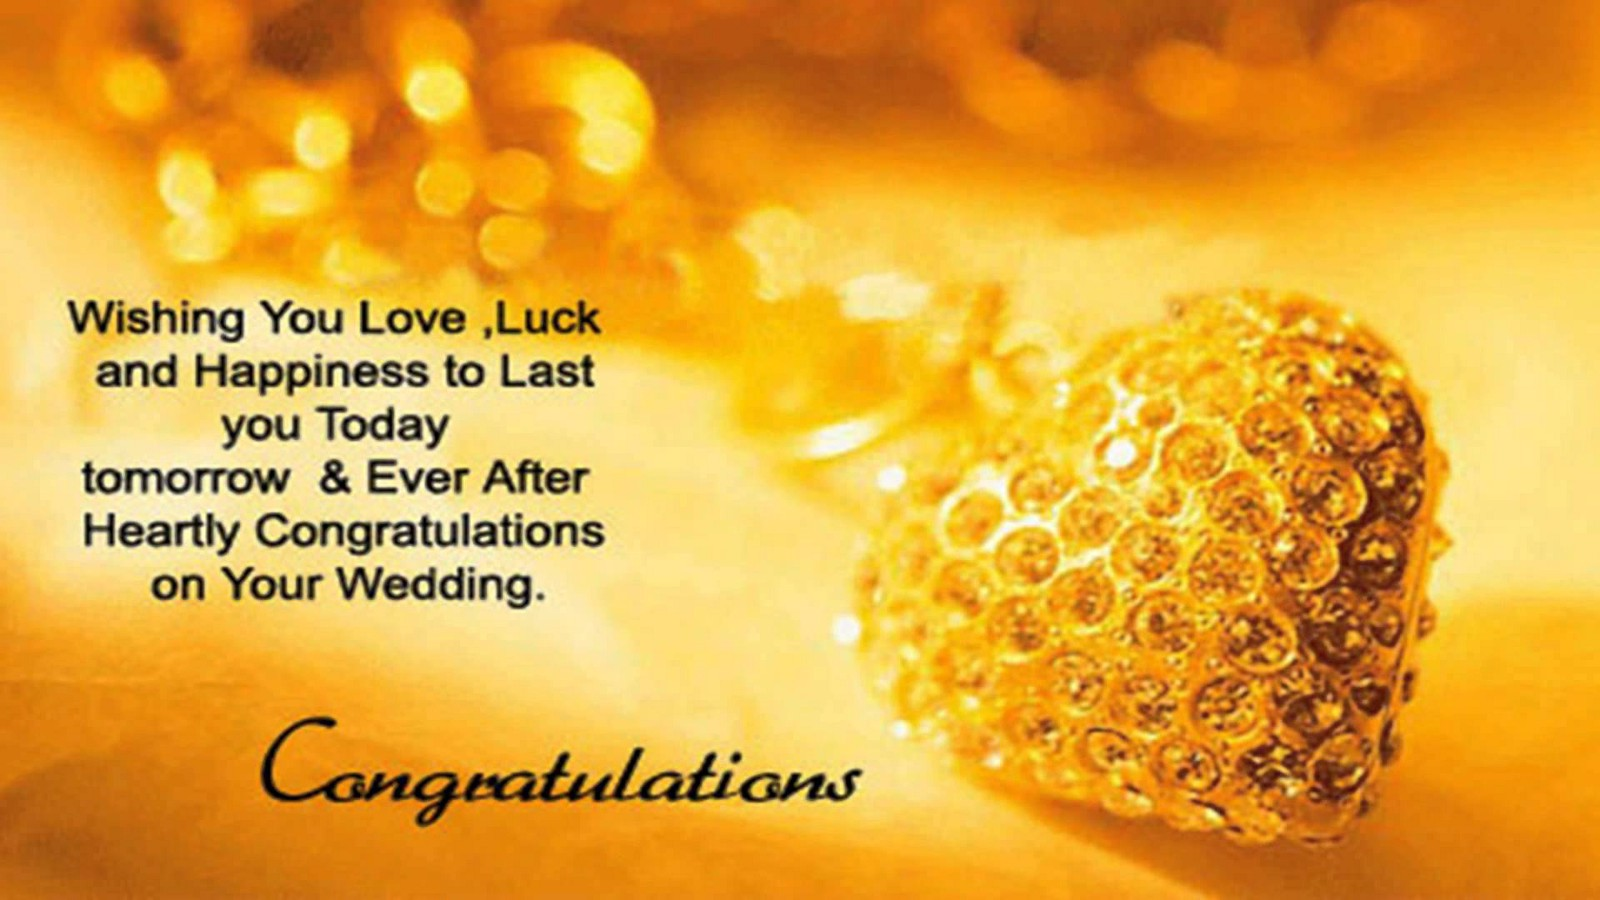 Best Wedding Messages Or Wishes For Whatsapp Vamsi Naga Medium